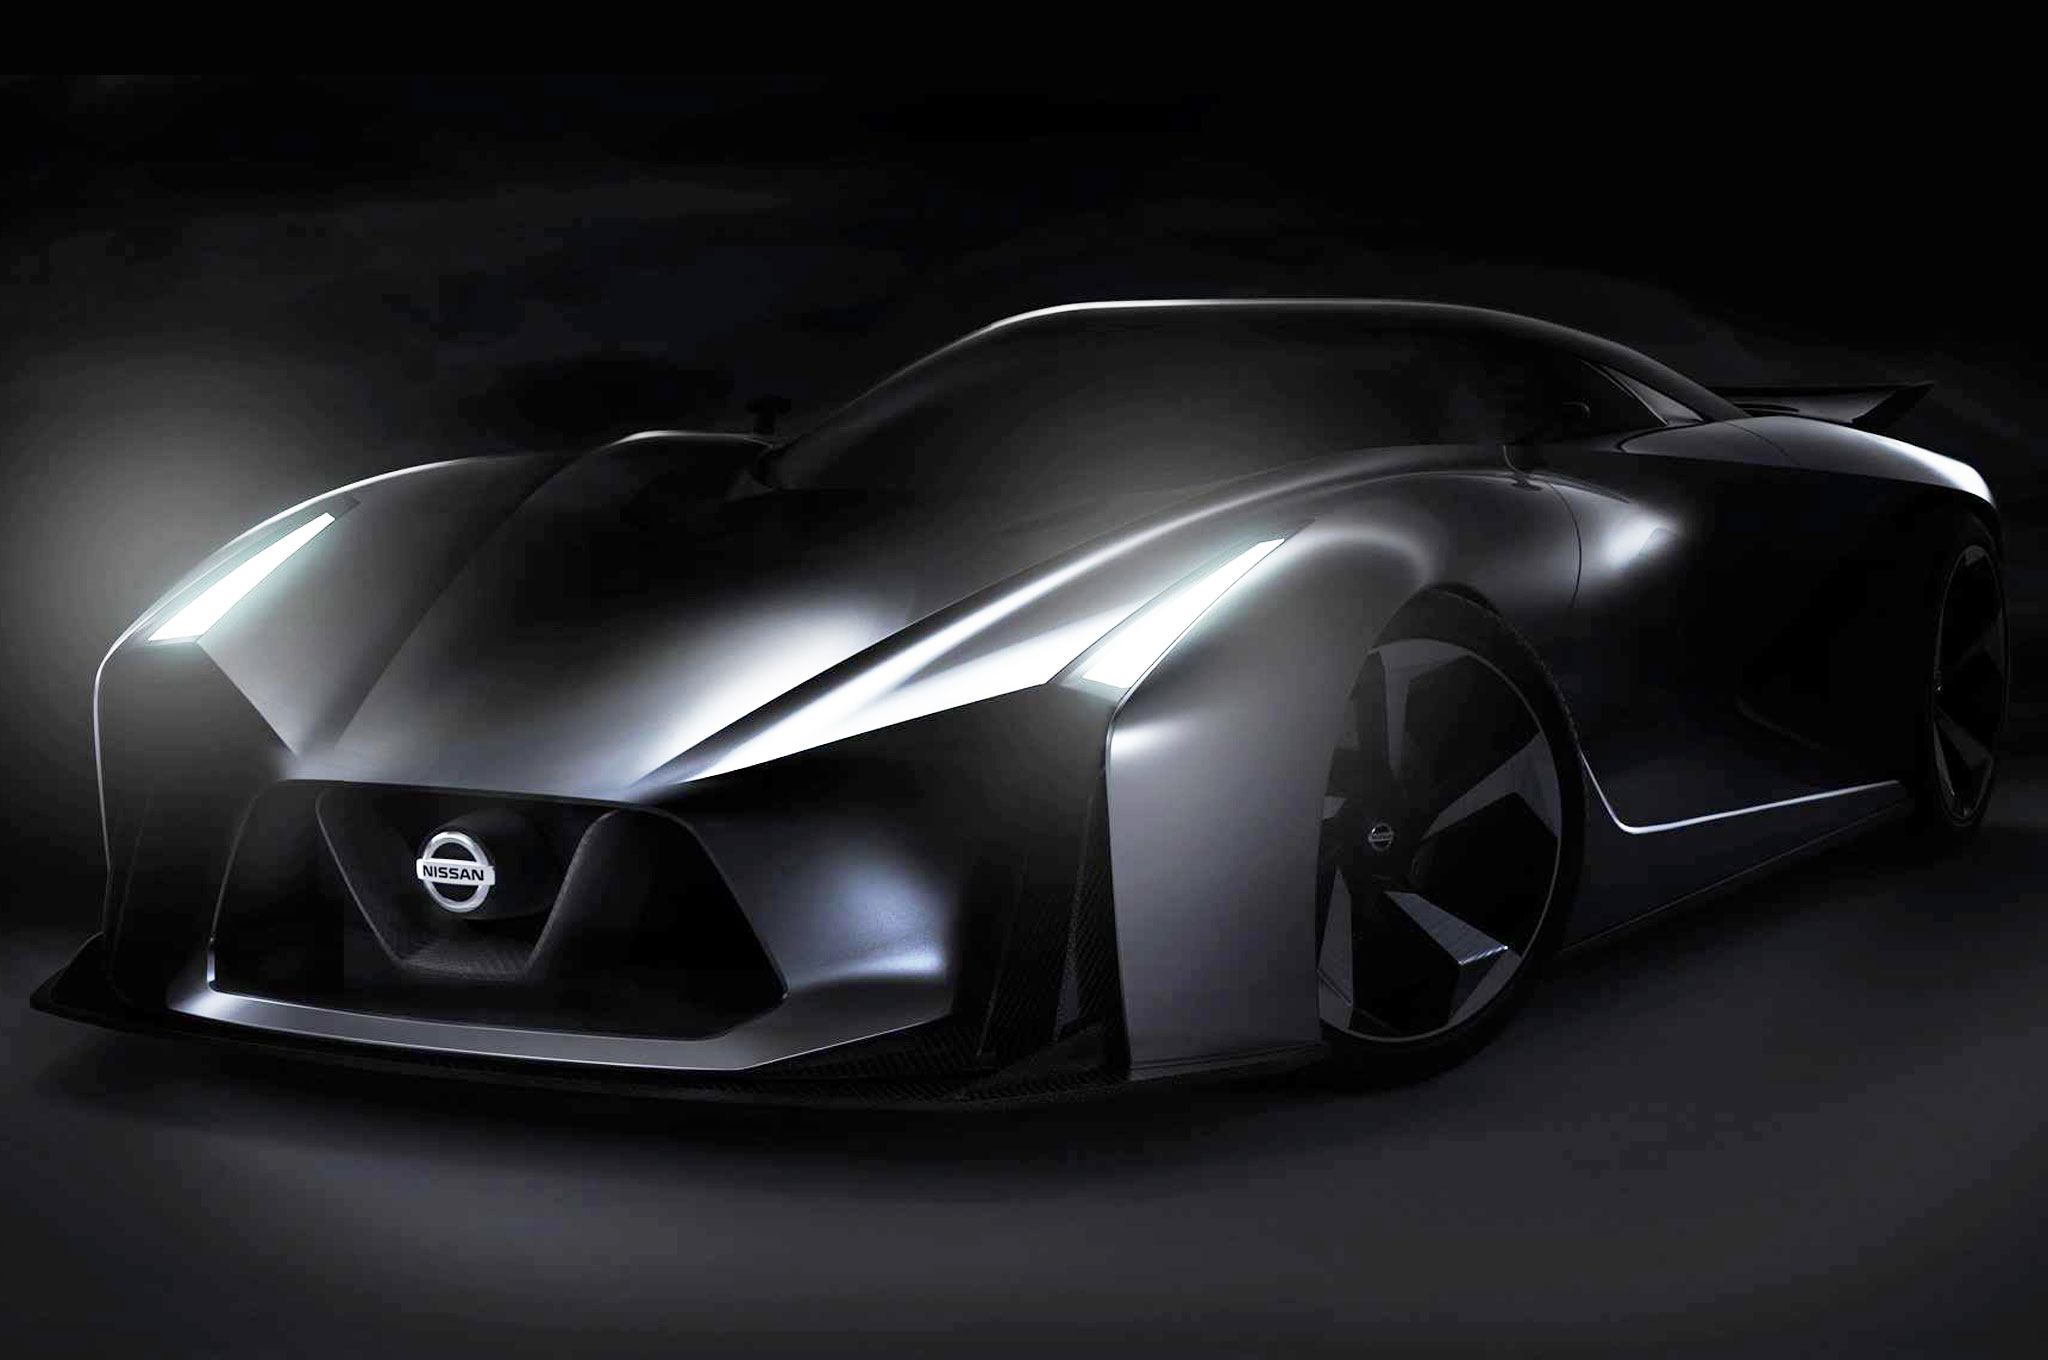 Nissan Takes Sheet Off New Concept Car, Likely for Gran Turismo ...